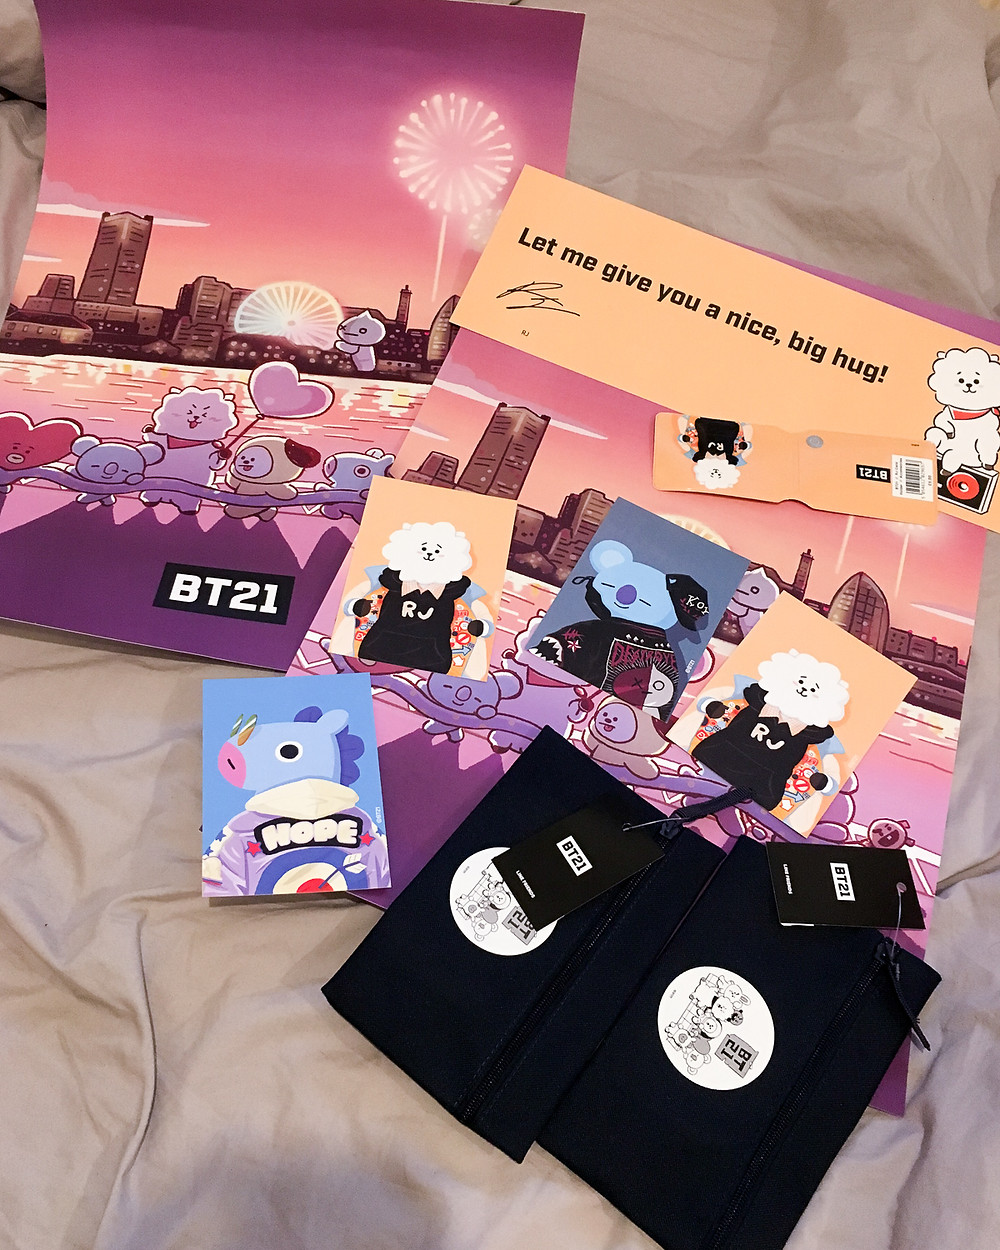 Where To Buy Bt21 And Bts Merchandise In London